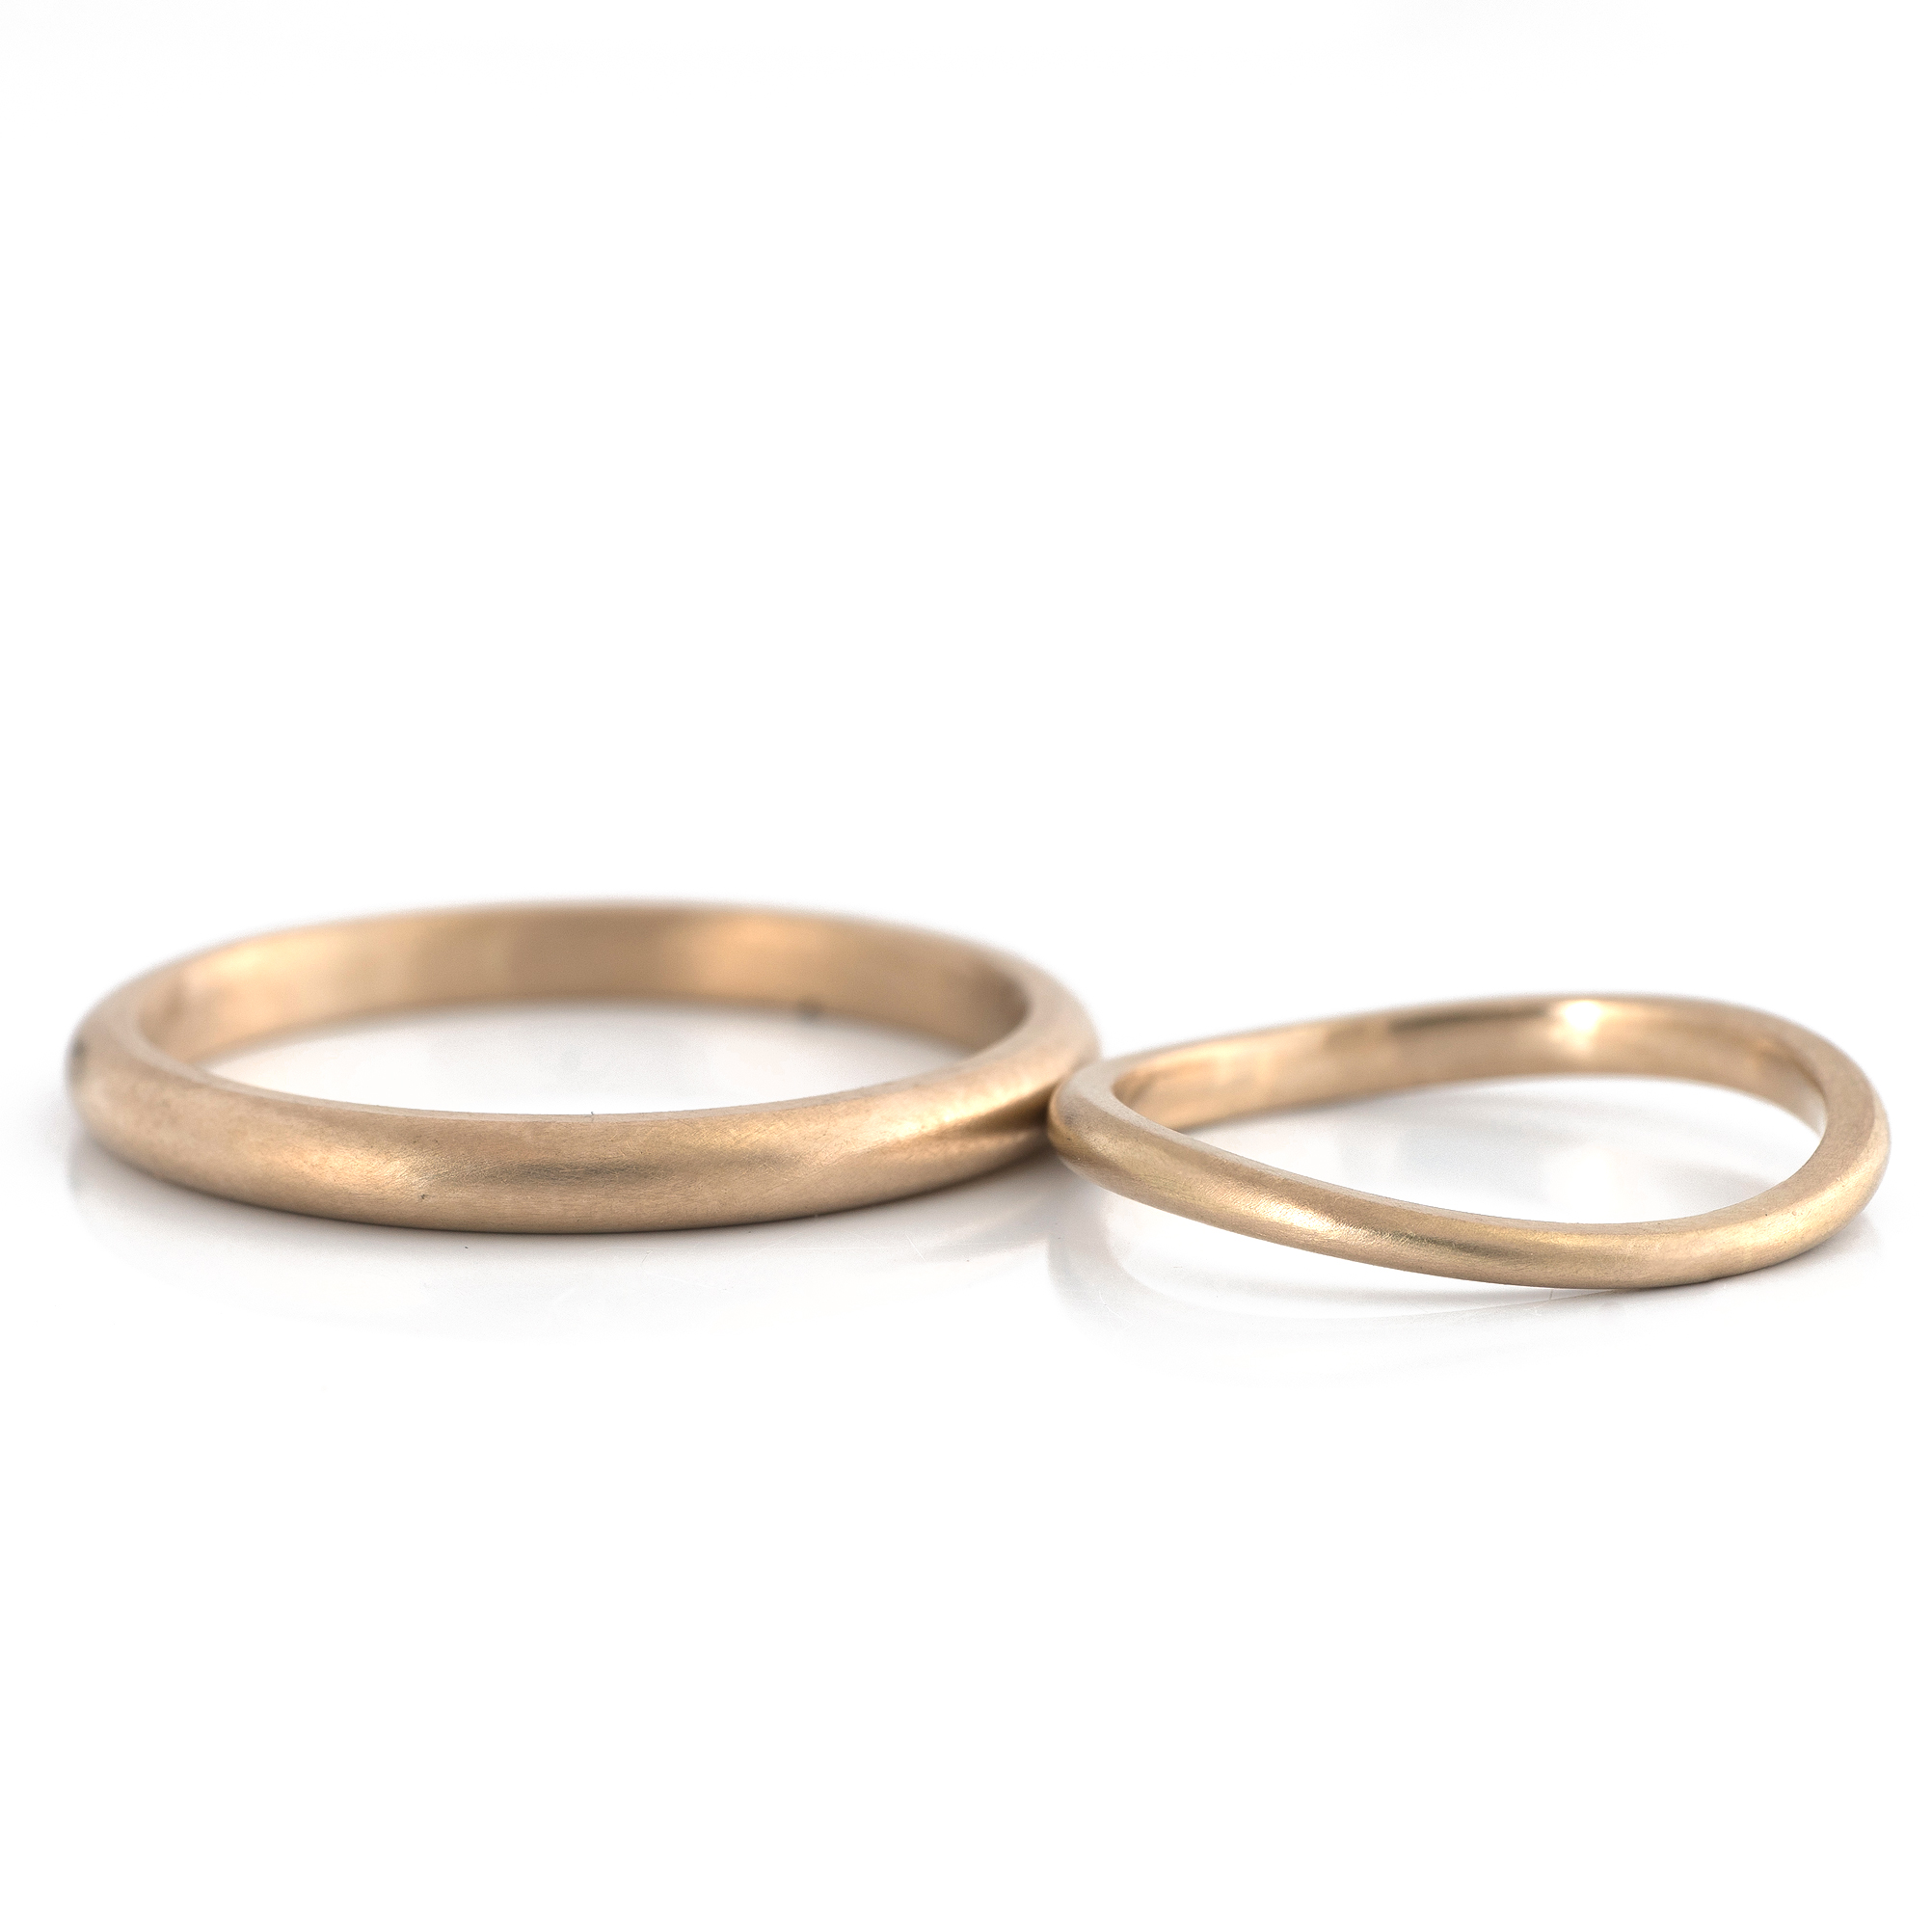 2.3mm round and 1.8mm wave ring in champagne gold #屋久島でつくる結婚指輪